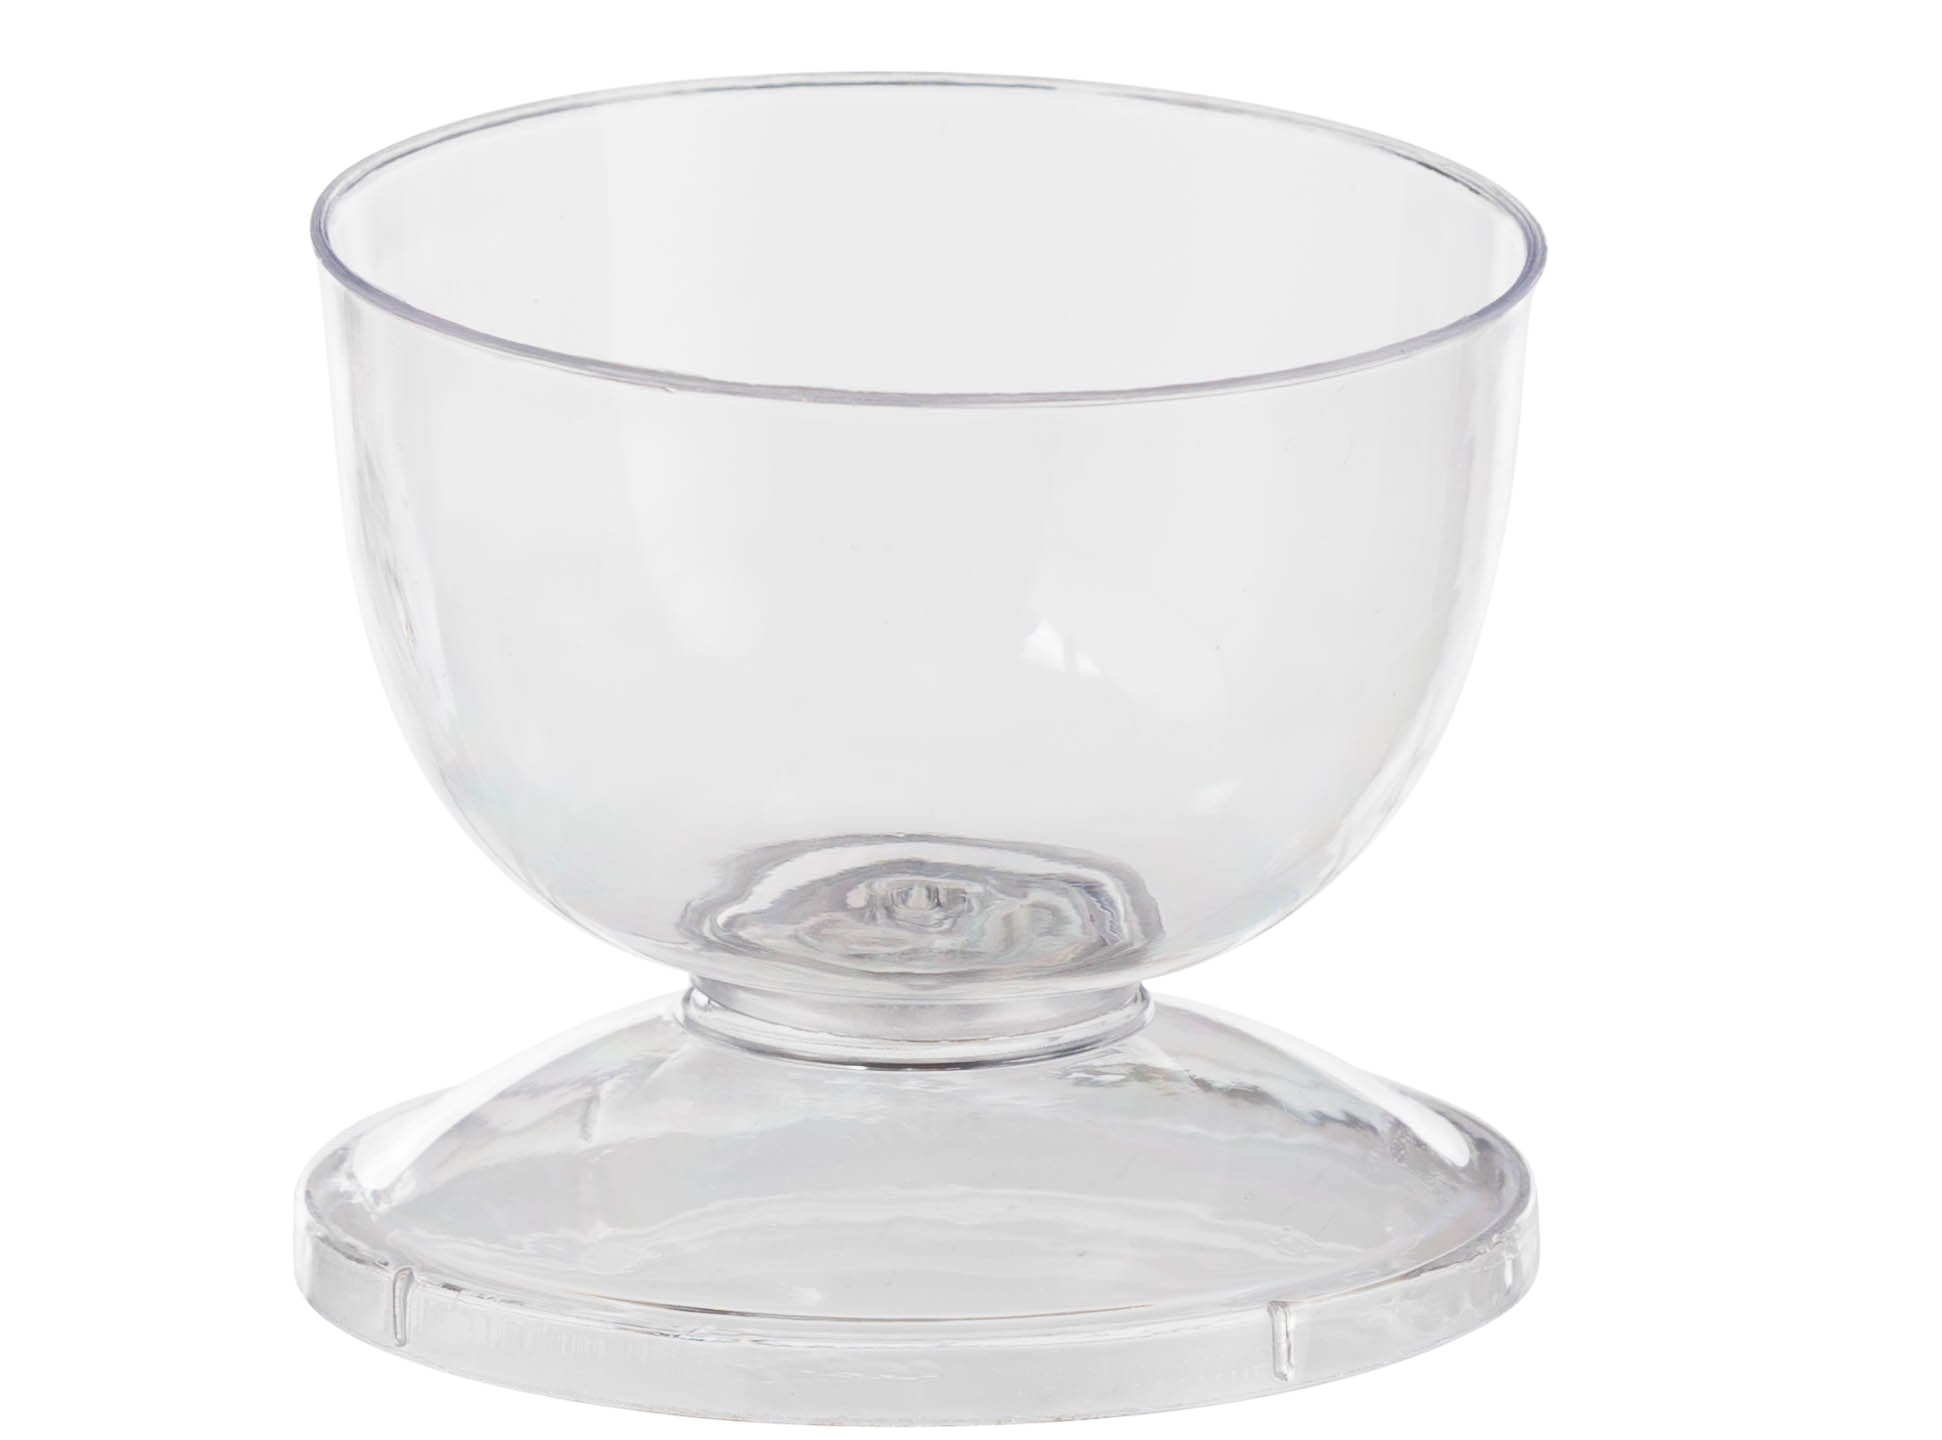 Exquisite 2.75'' Clear Plastic Mini Dessert Cup With Lid/Stand - 5 oz - 20 Count